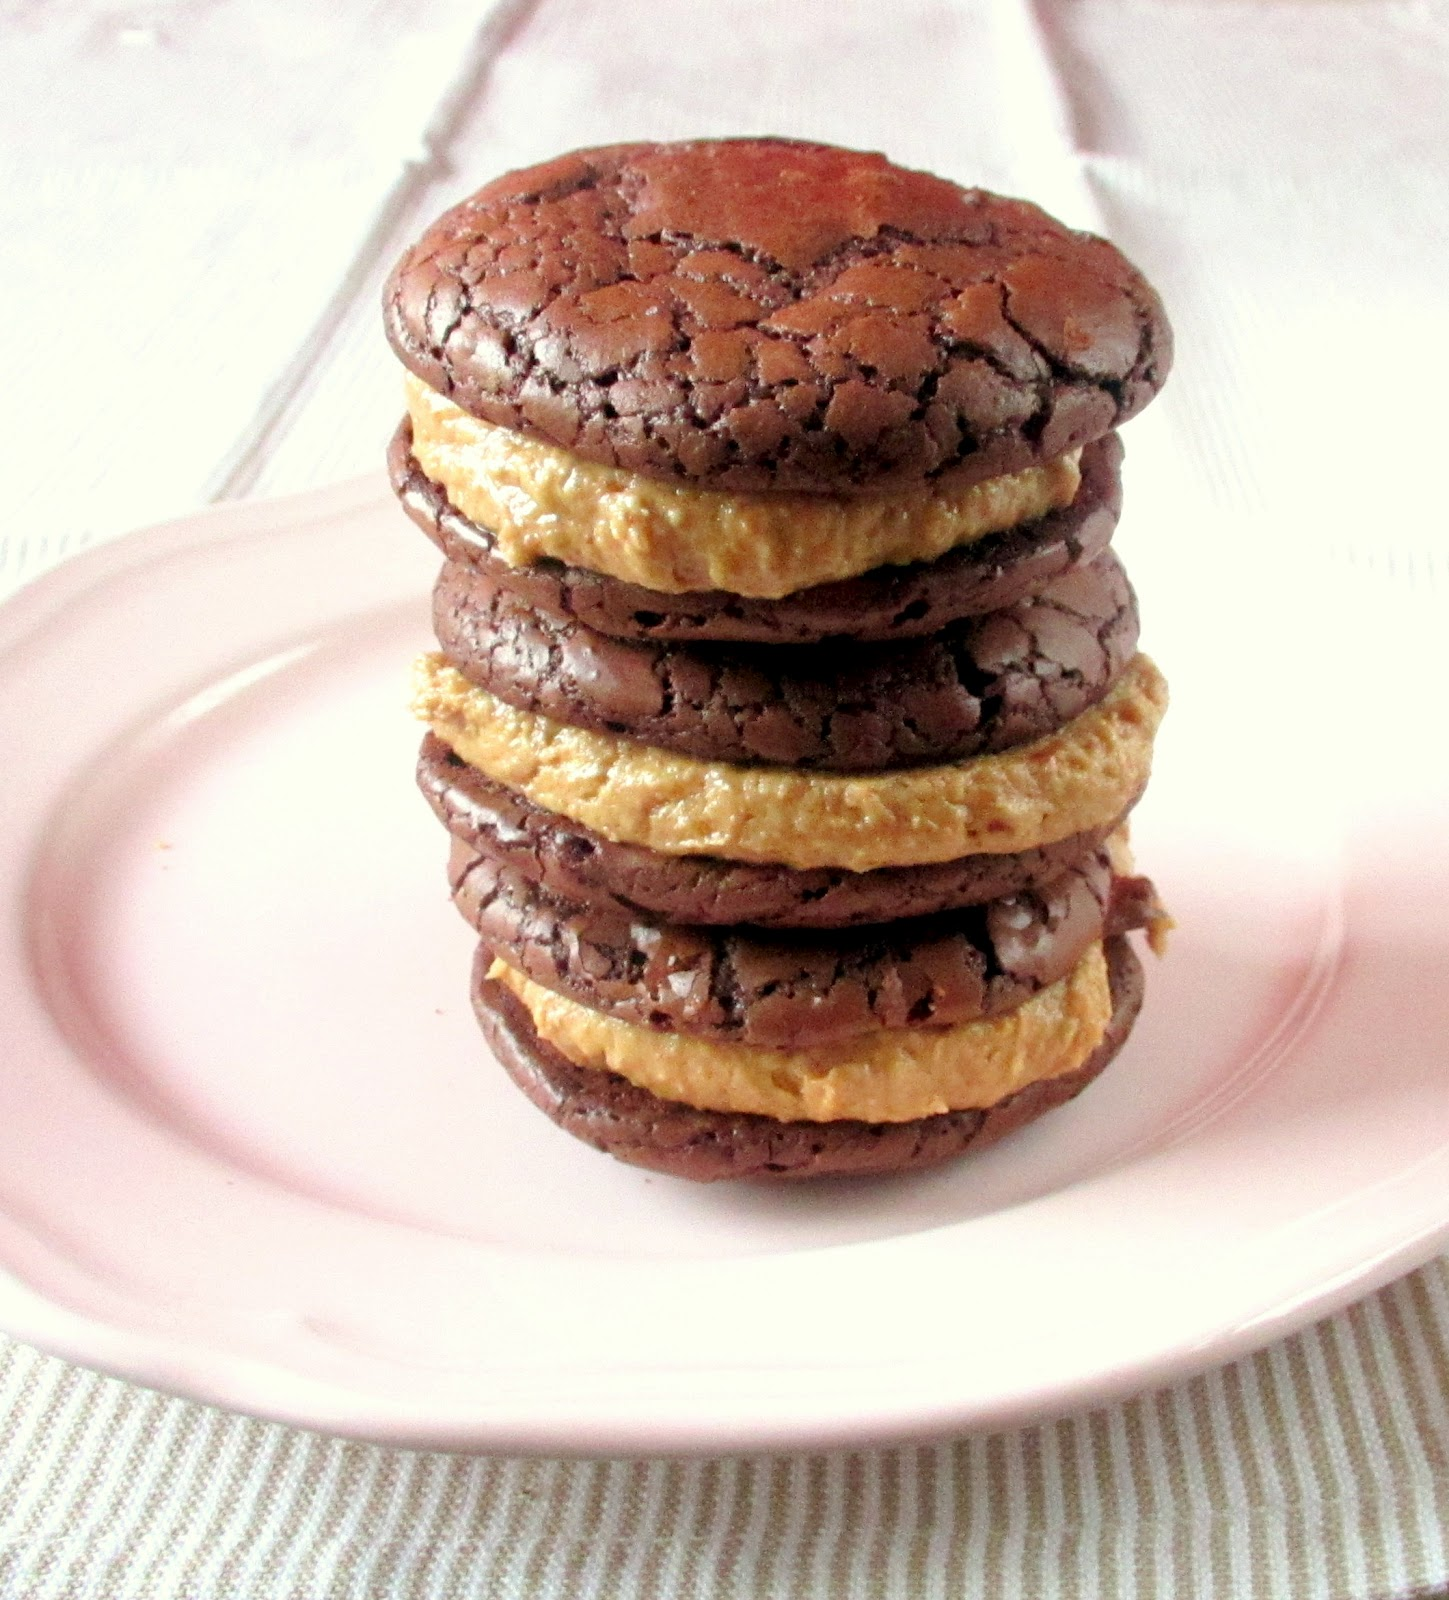 Me And My Sweets: Brownie Cookies with Peanut Butter Frosting